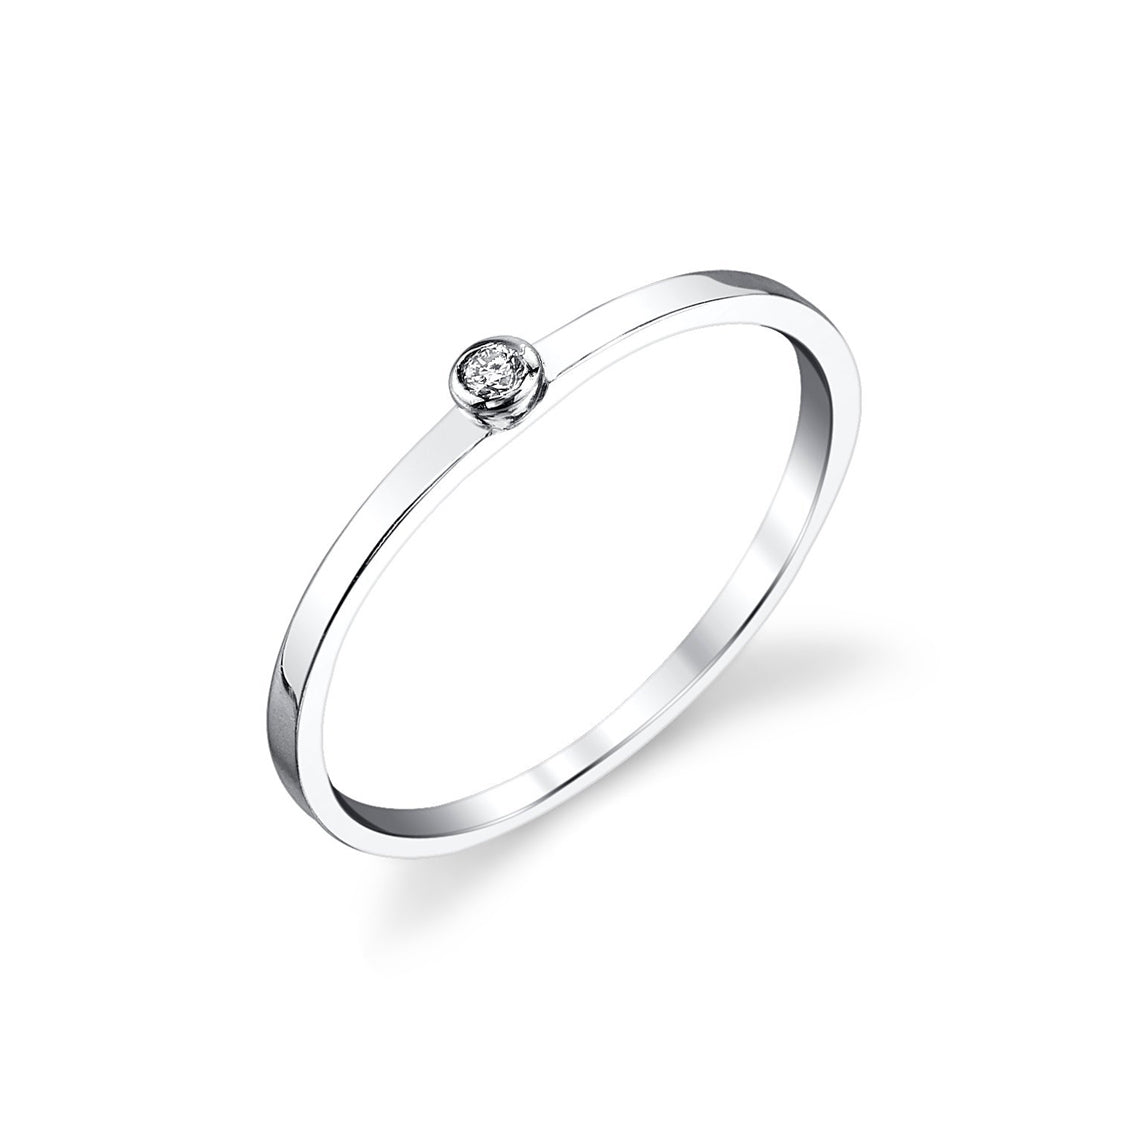 Single White Diamond Ring - Gabriela Artigas